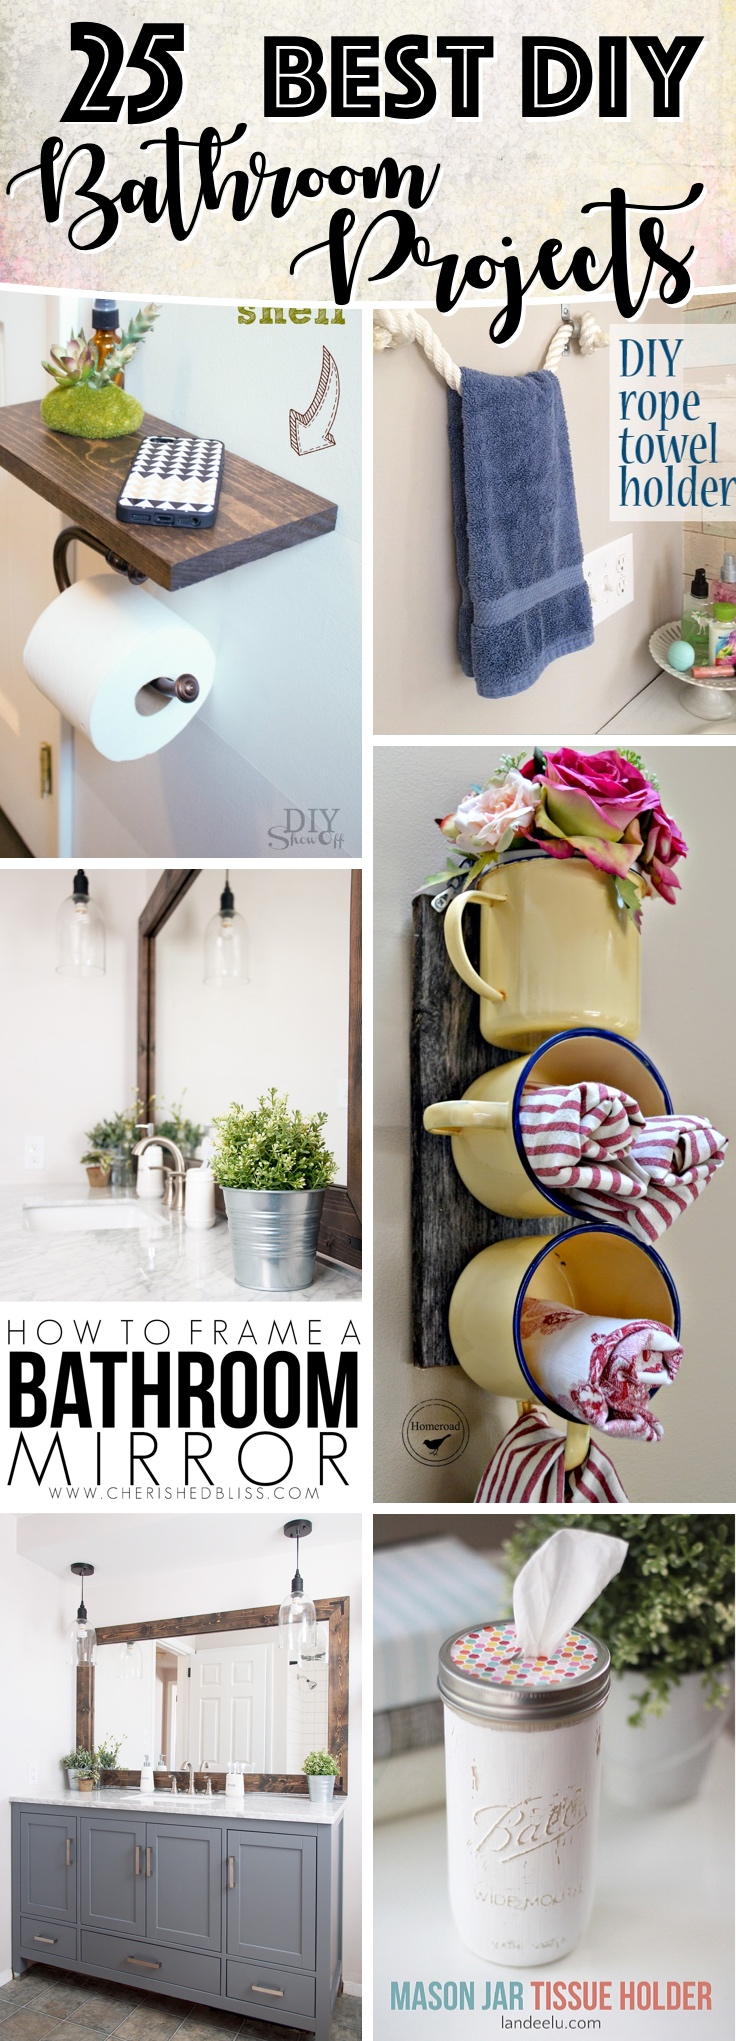 Diy Bathroom Projects 25 utterly innovative diy bathroom projects to give your space a